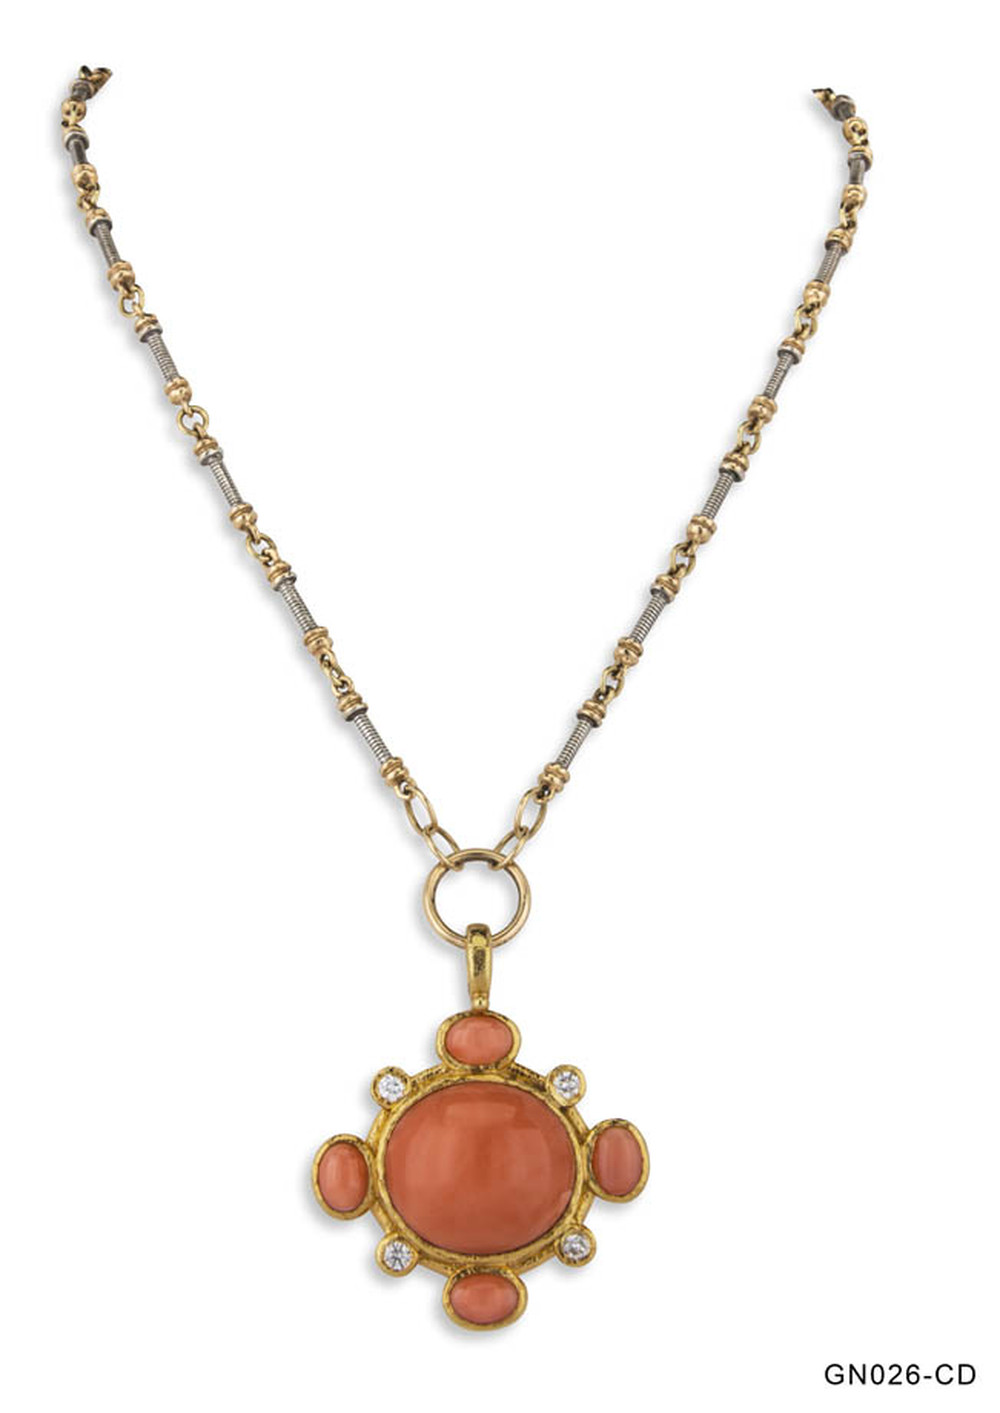 Coral and Diamond Pendant Necklace